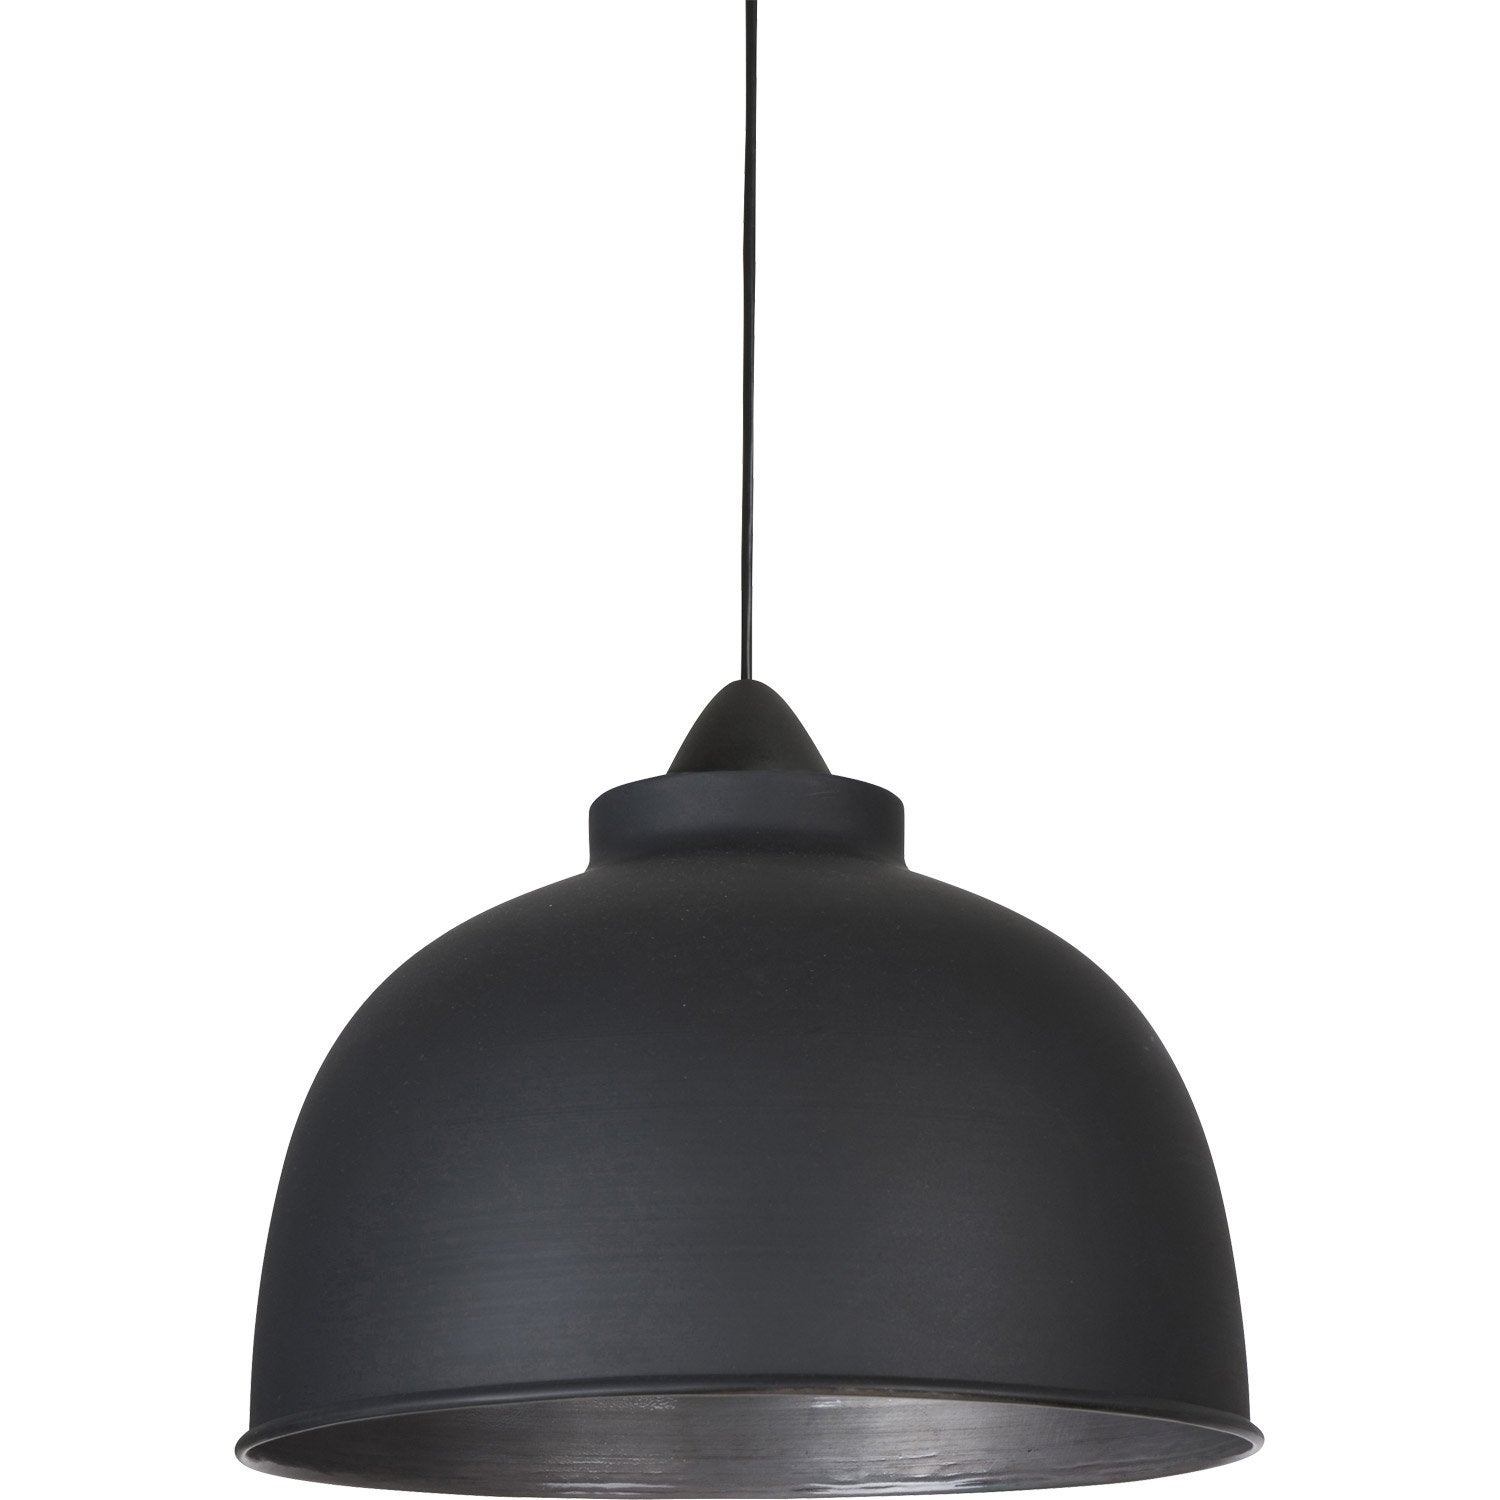 Suspension e27 style industriel little dock m tal noir for Lampe suspendu noir